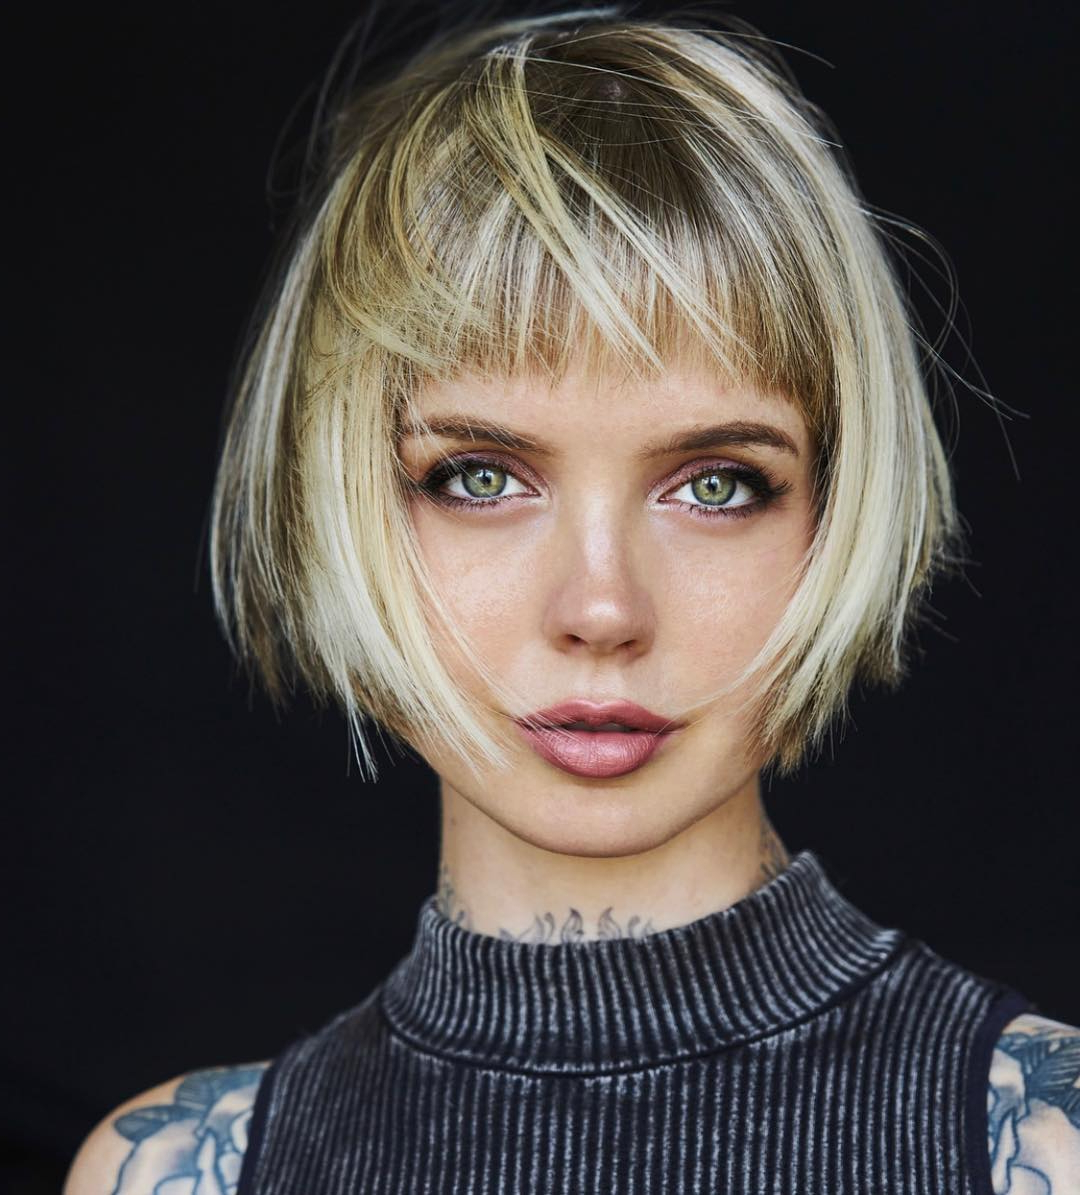 10 Trendy Messy Bob Hairstyles And Haircuts, 2020 Female With Blonde Blunt Haircuts Bob With Bangs (View 18 of 20)